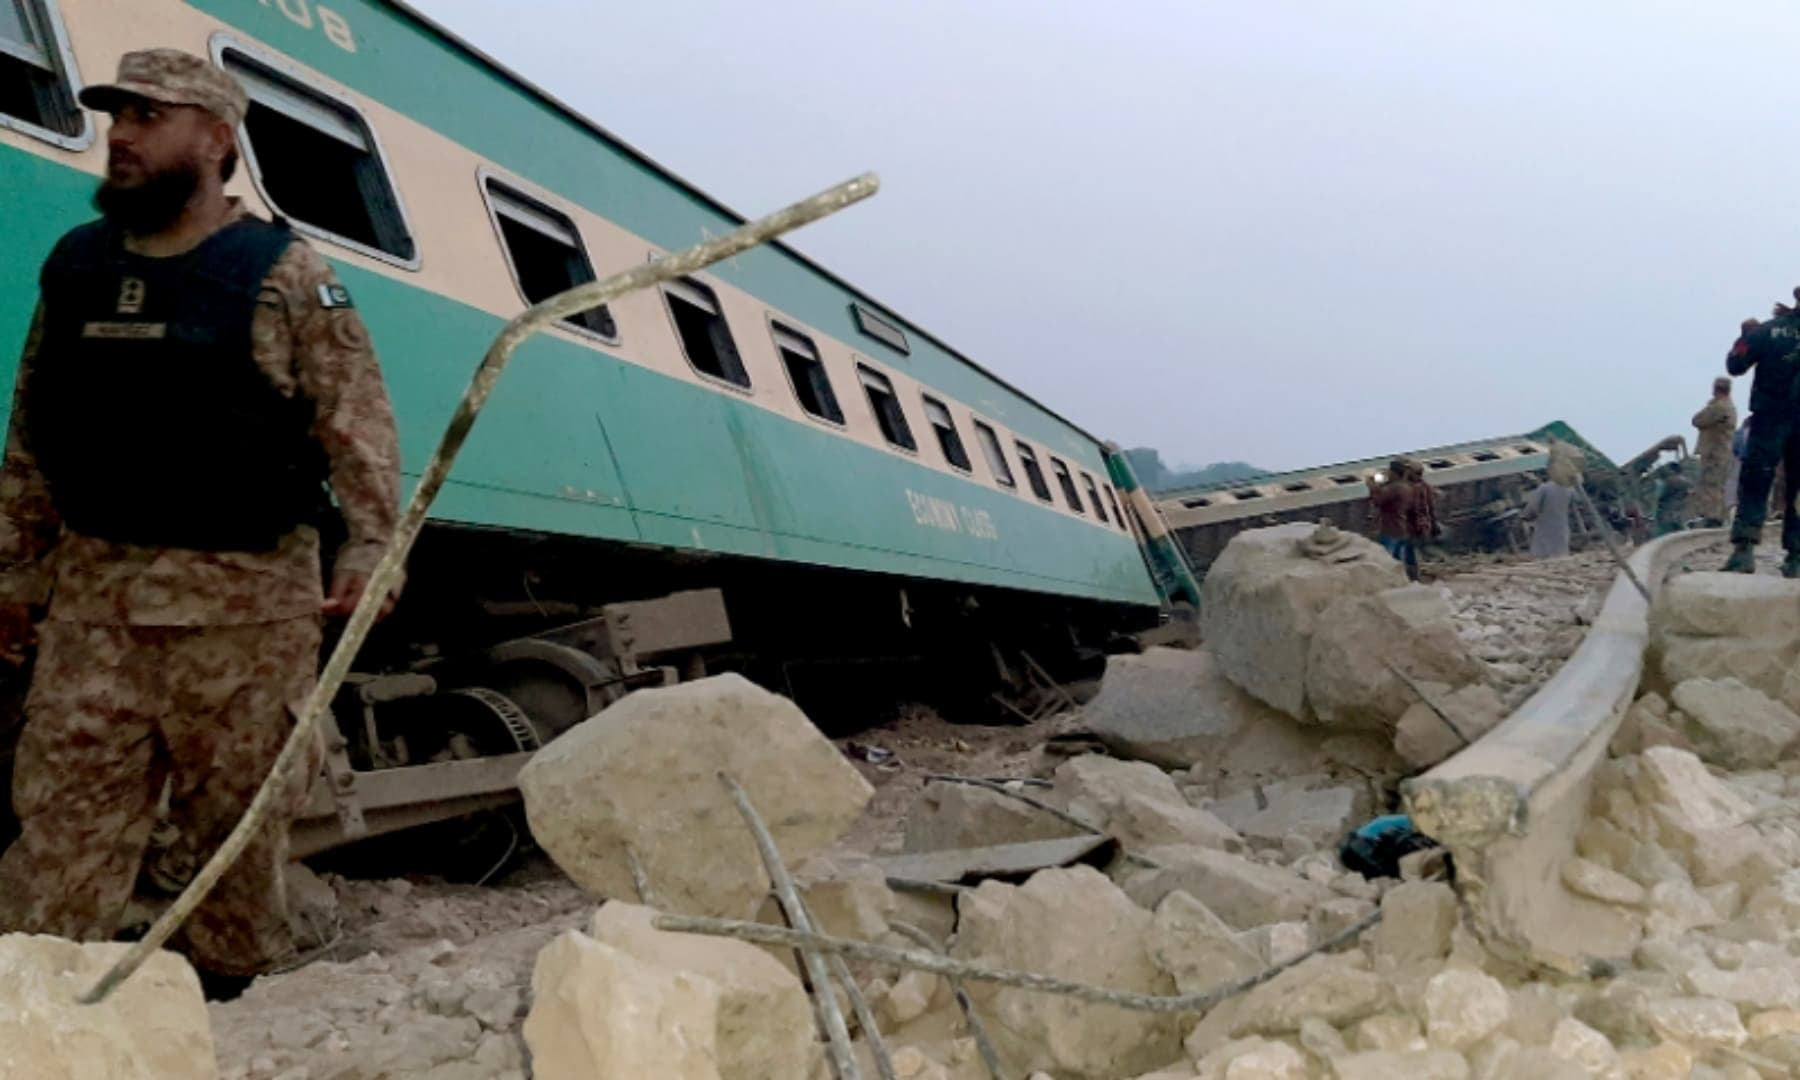 Army, police and rescue workers gather at the site of a derailed train near Rohri, March 7, 2021. — AP